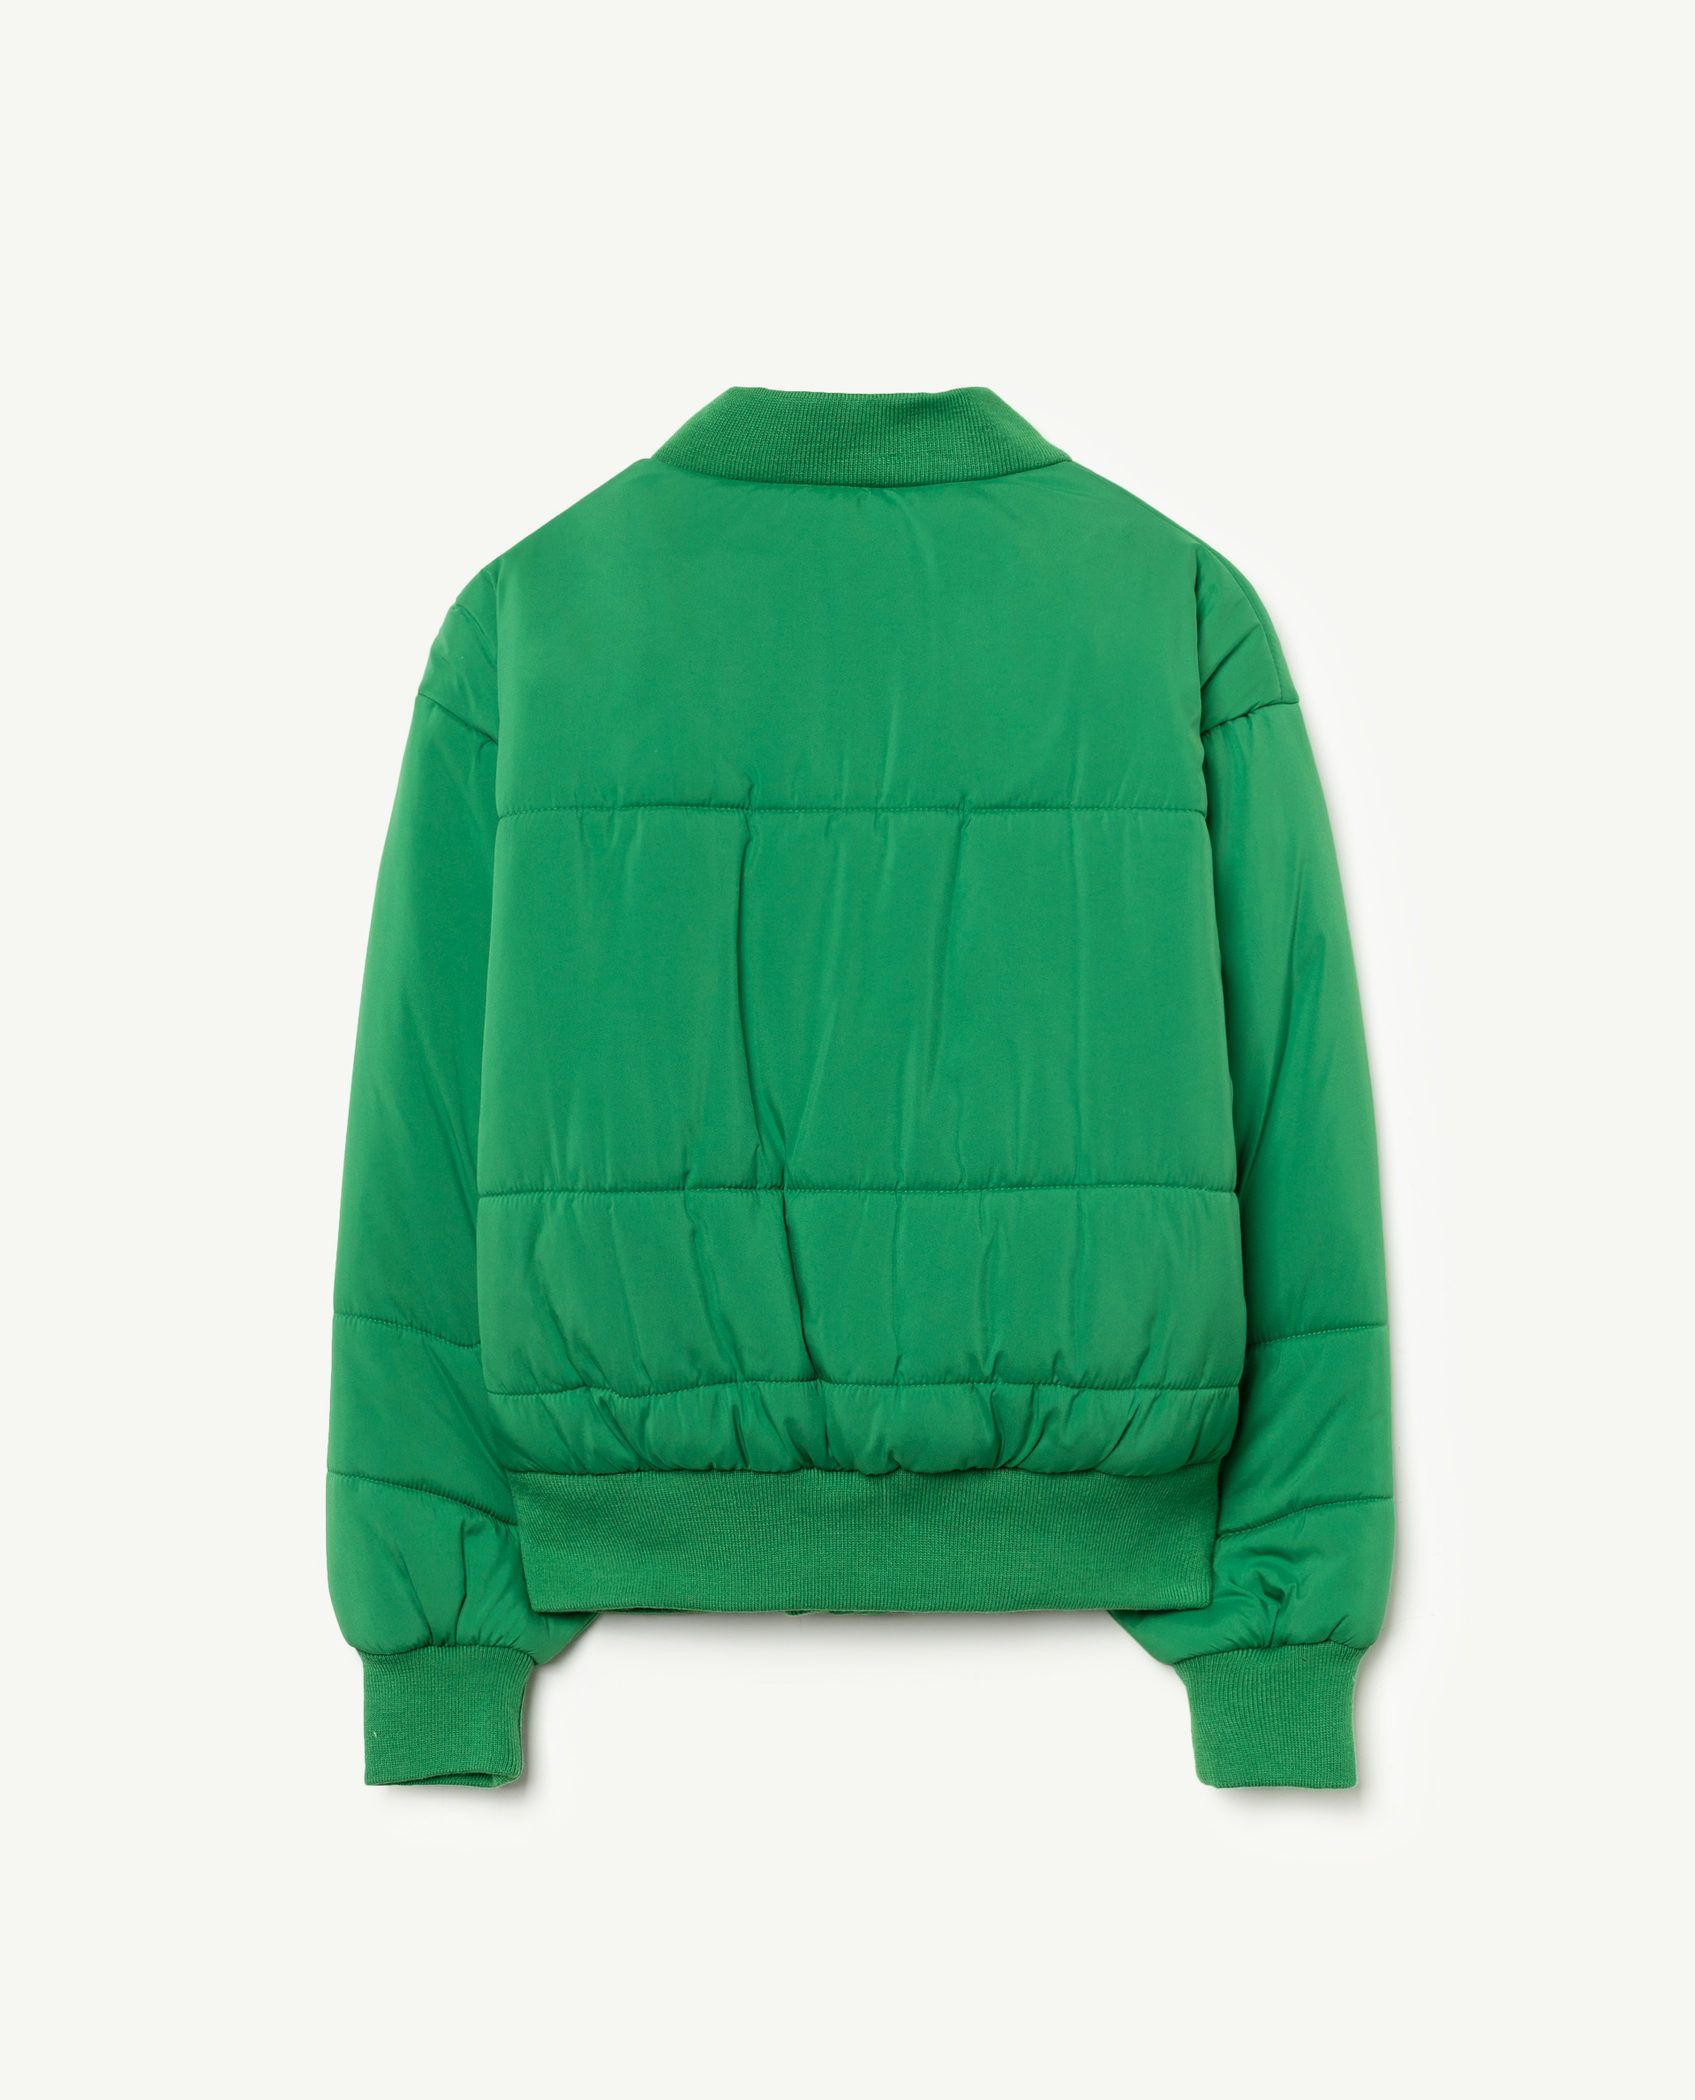 Green Lemur Jacket img-2